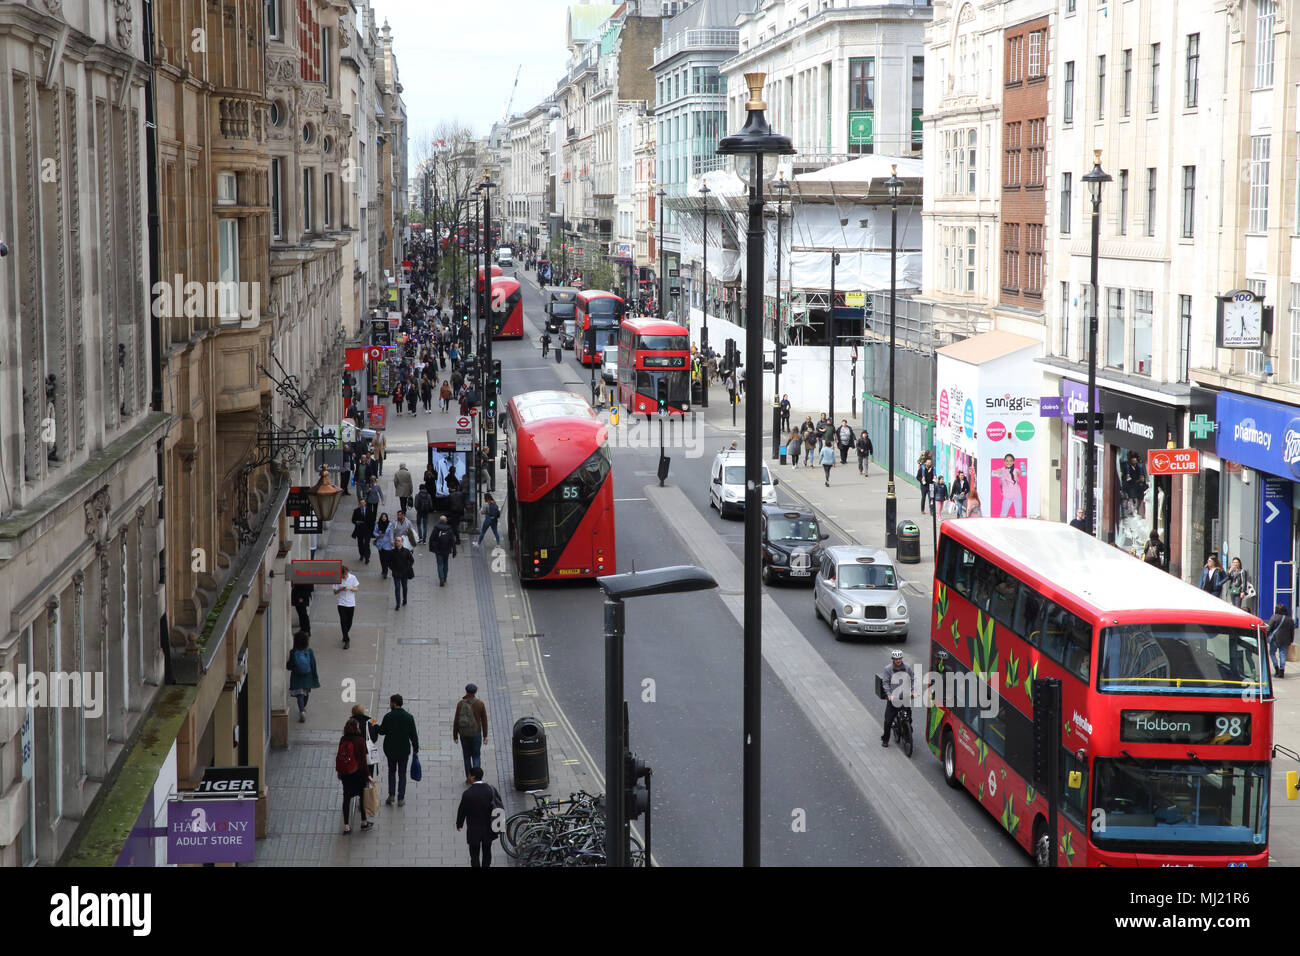 Buses and other traffic on Oxford Street at east end near Tottenham Court Road, in London, UK. - Stock Image